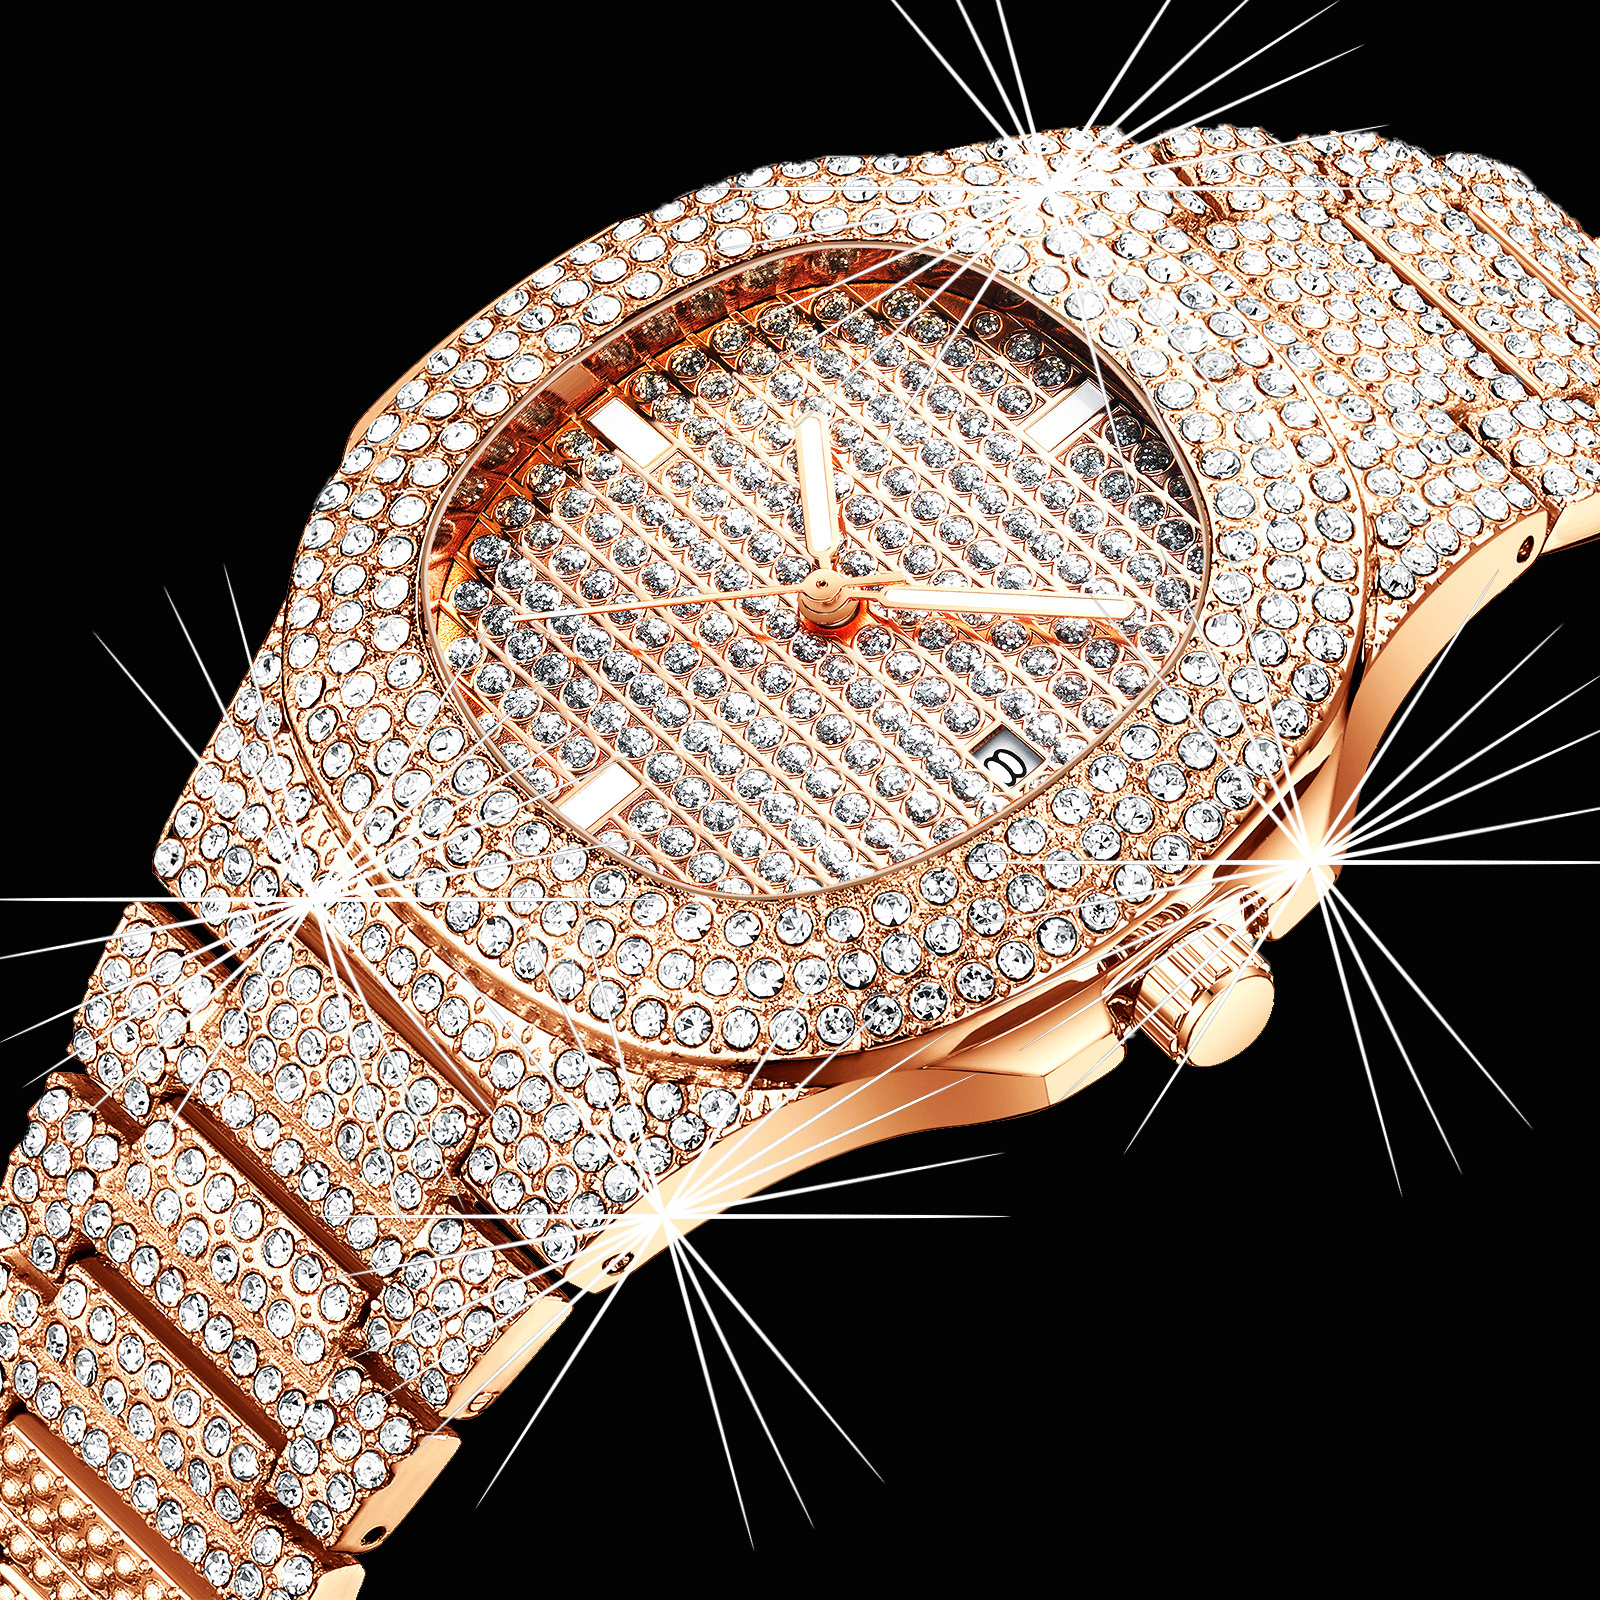 Diamond Watch For Women Luxury Brand Ladies Gold Square Watch Minimalist Analog Quartz Movt Unique Female Iced Out Watch